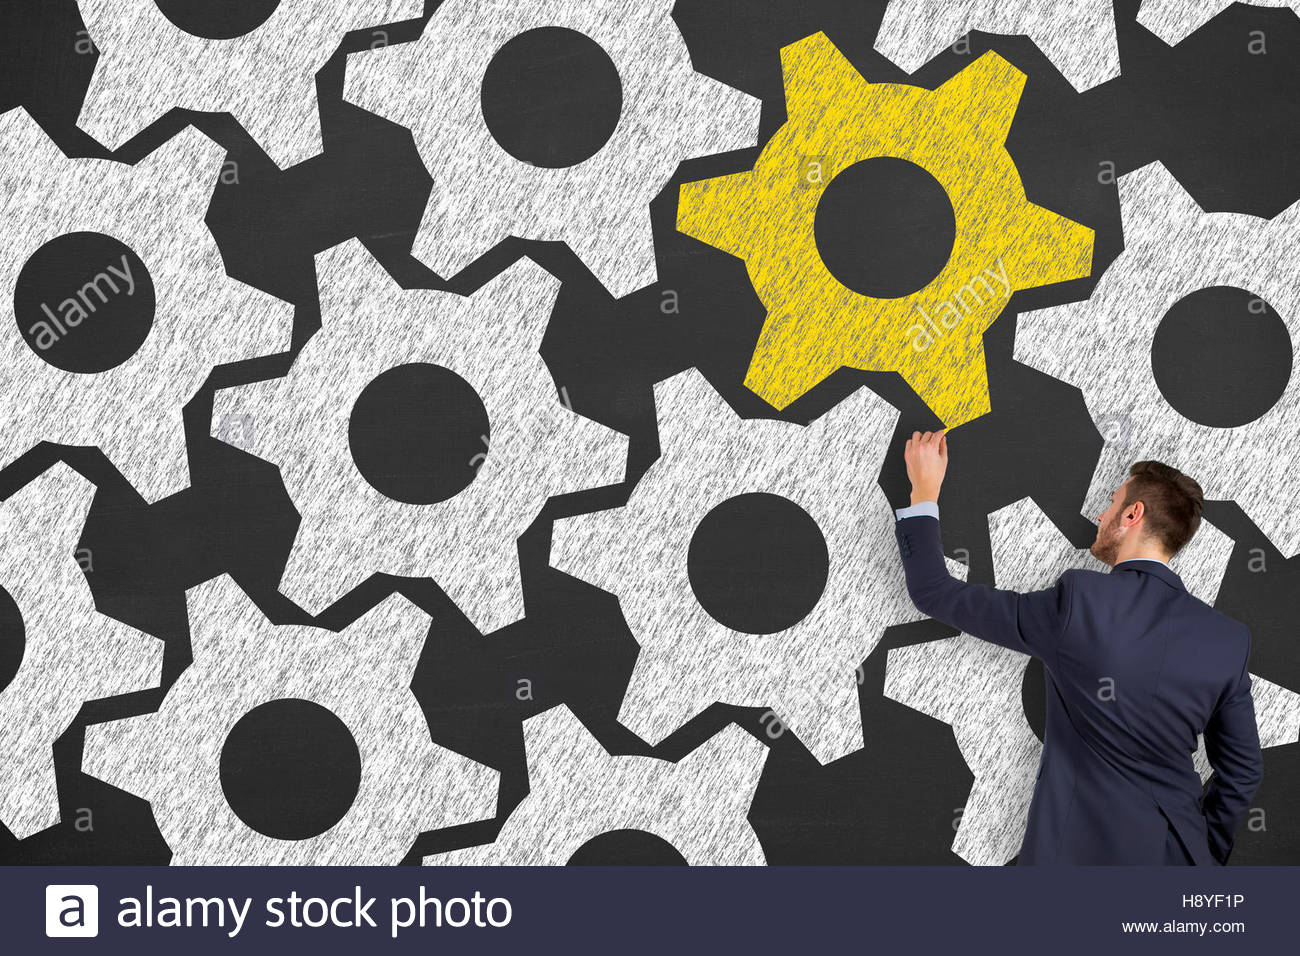 Difference Gear Solution Concepts on Blackboard Background - Stock Image